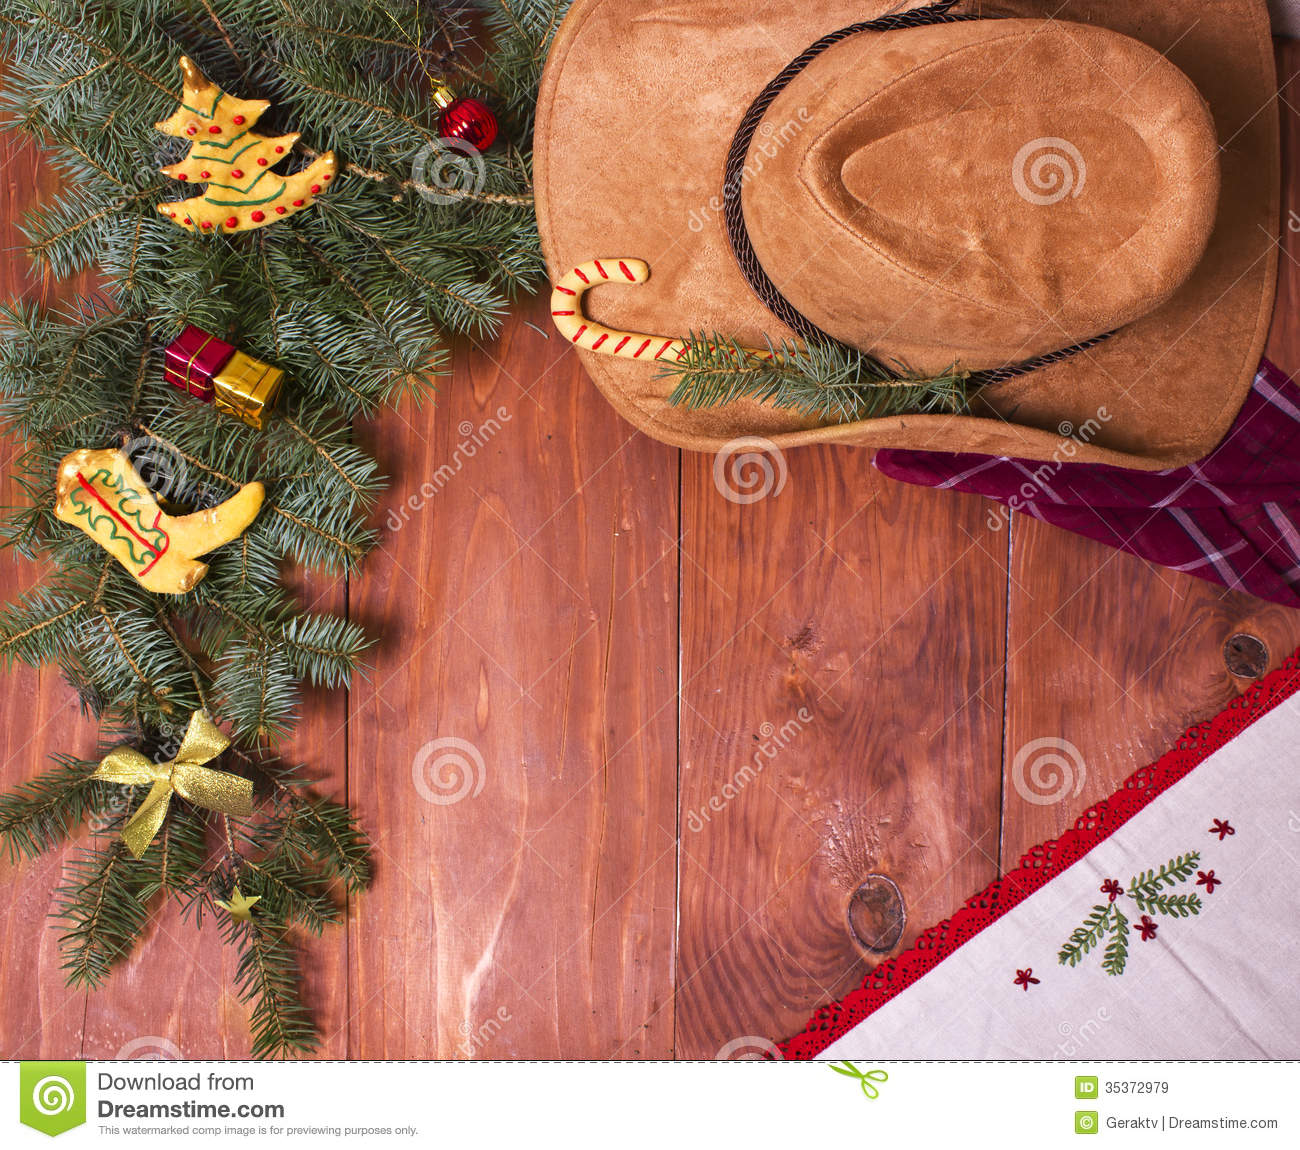 Cowboy Christmas Wood Background With Holiday Decorations